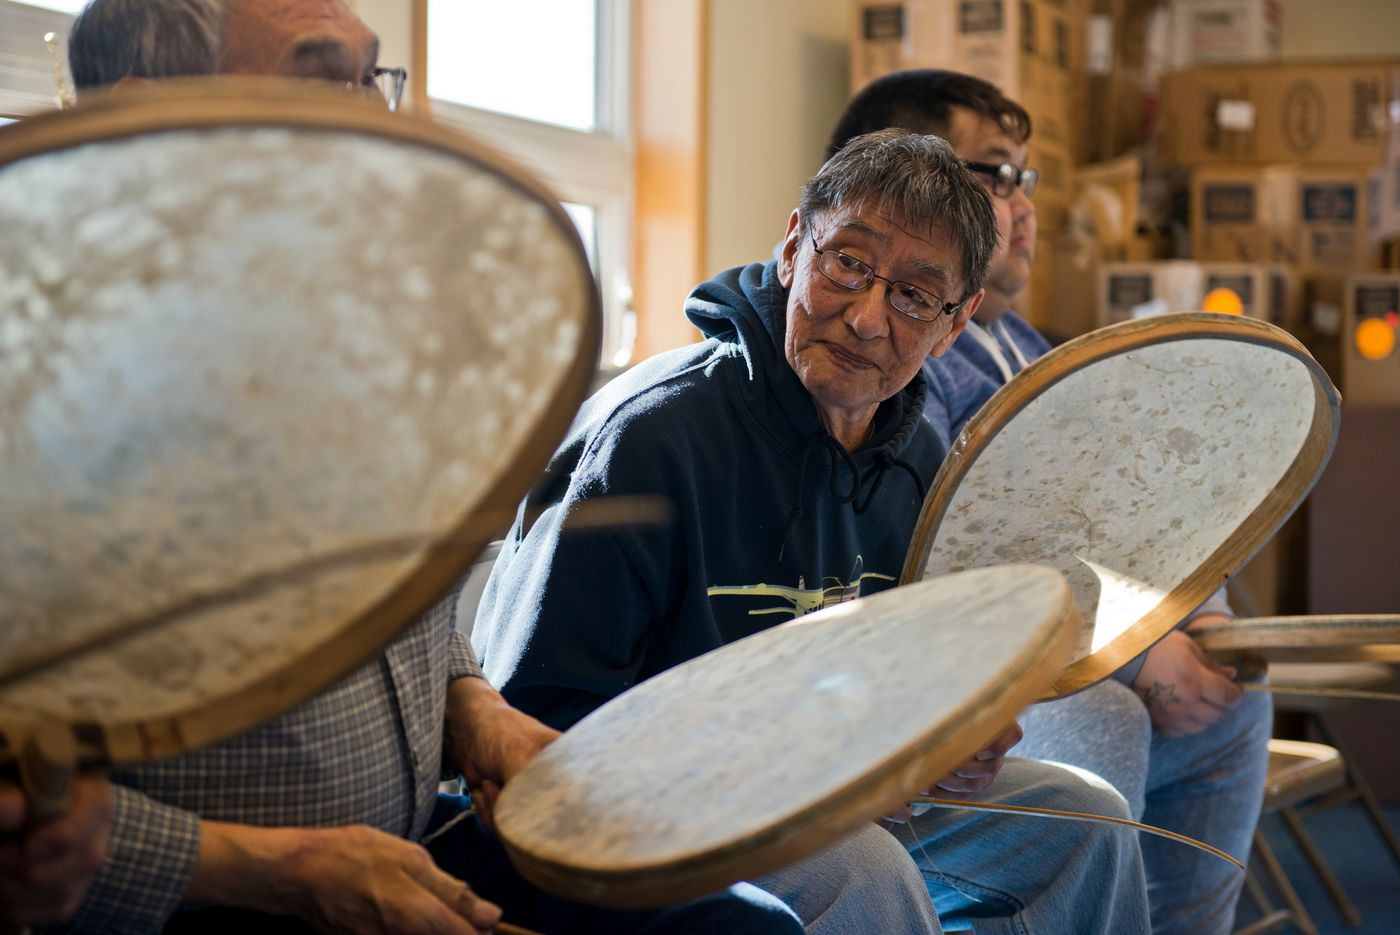 George Noongwook drums with other men at an event in the Native Village of Savoonga building on April 20. The drums are made with the stomach of walrus. (Marc Lester / Alaska Dispatch News)